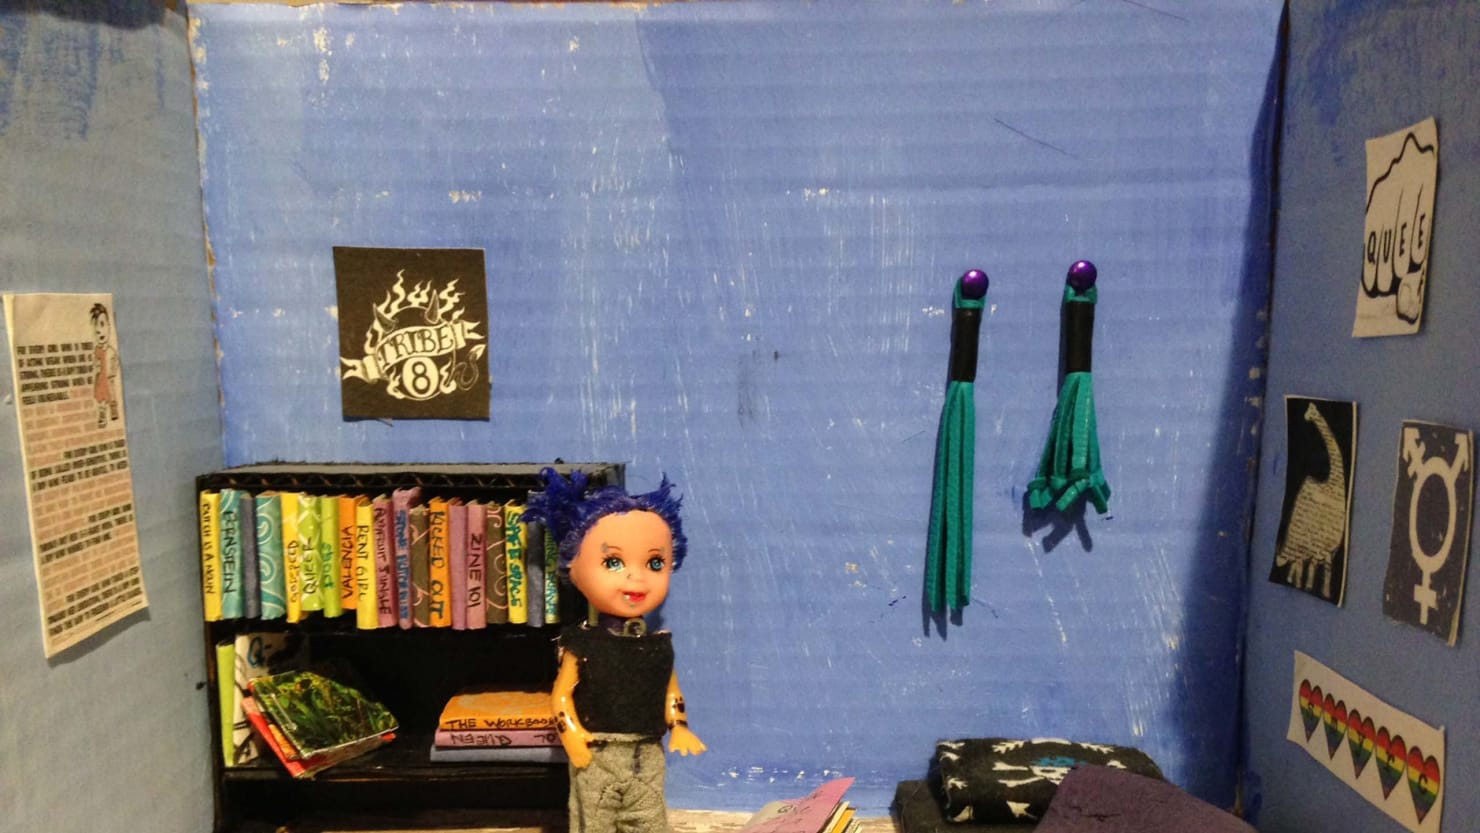 K And K Auto >> The Power of Literature: The Queer Book Diorama Project ...